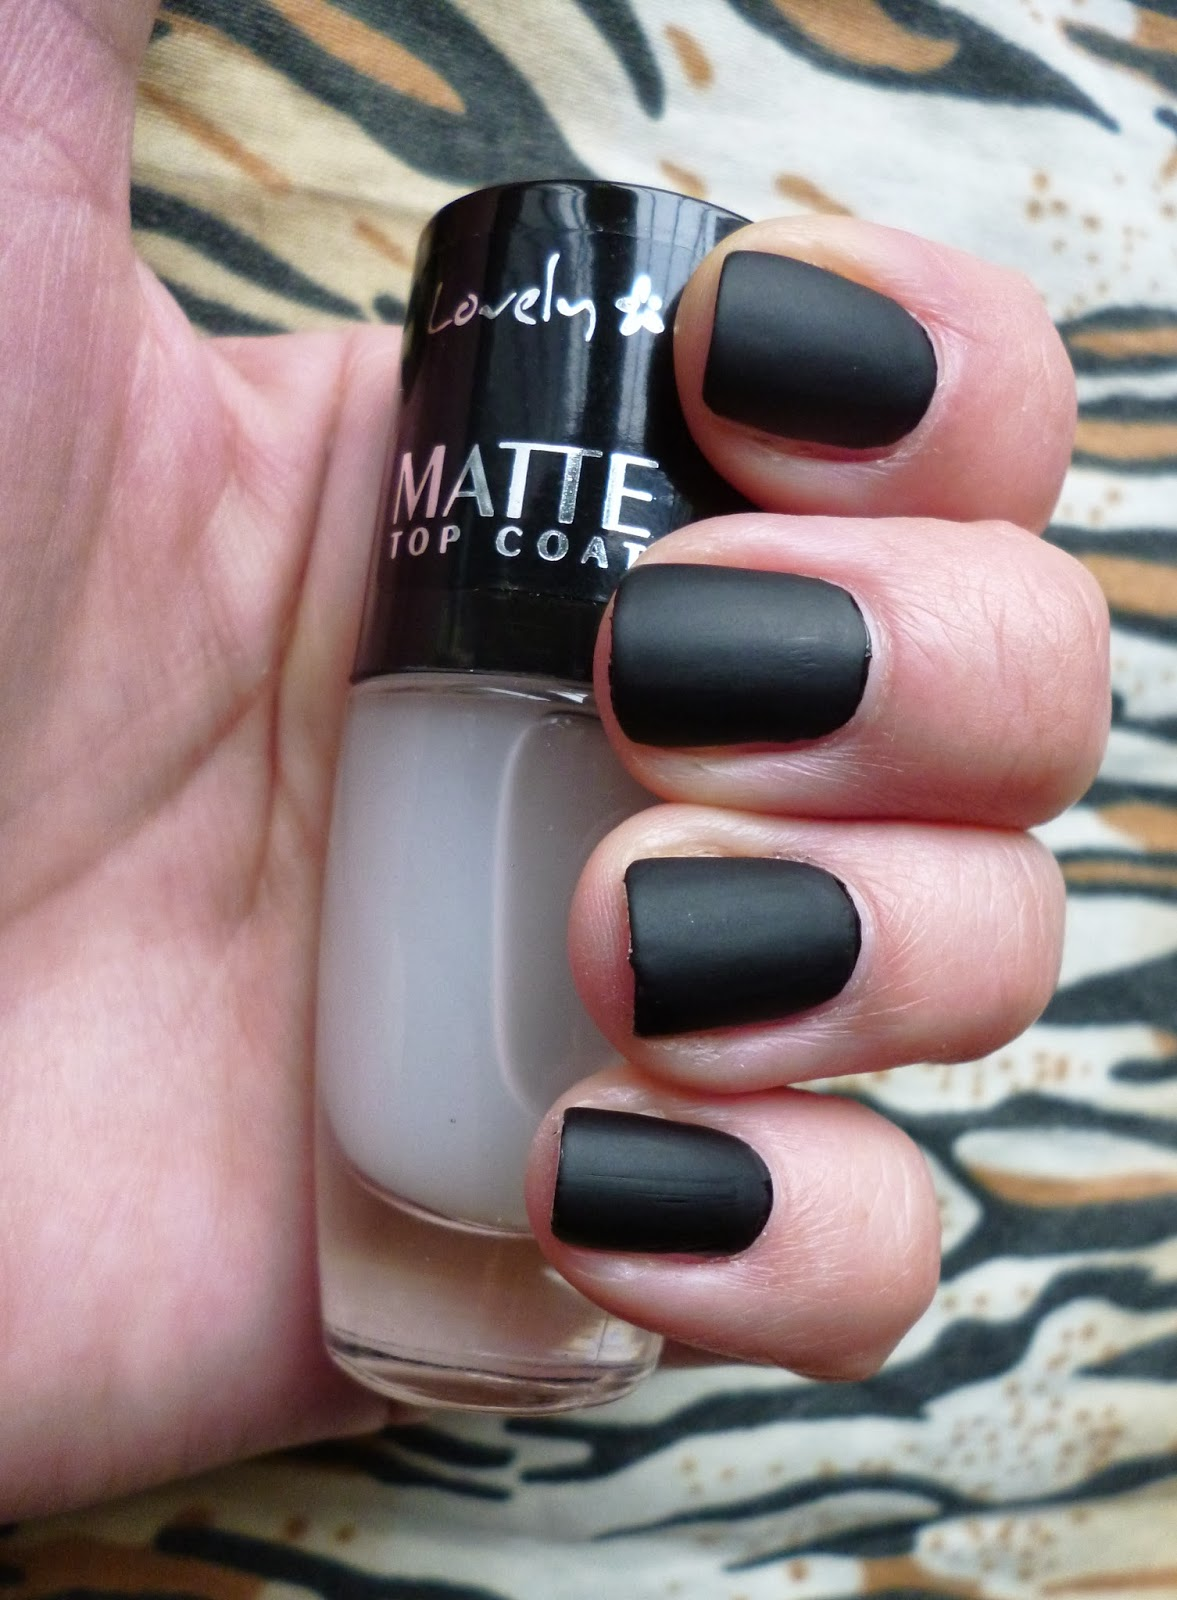 To score the look sans a trip to the salon, run O.P.I.'s Matte Top Coat from the nail base to right before the tips for a luxe contrast.